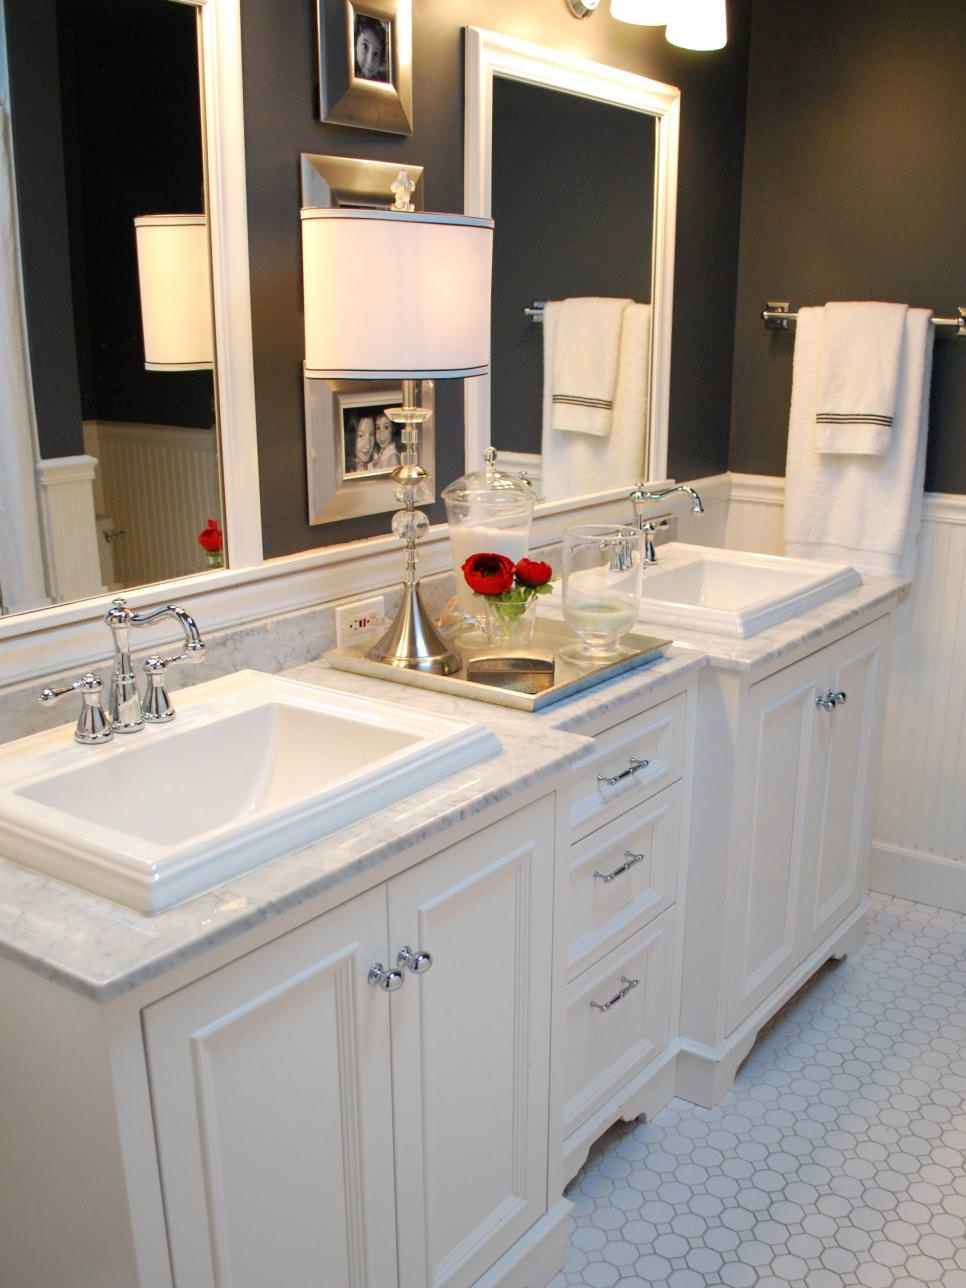 24 double bathroom vanity ideas bathroom designs for Furniture ideas for bathroom